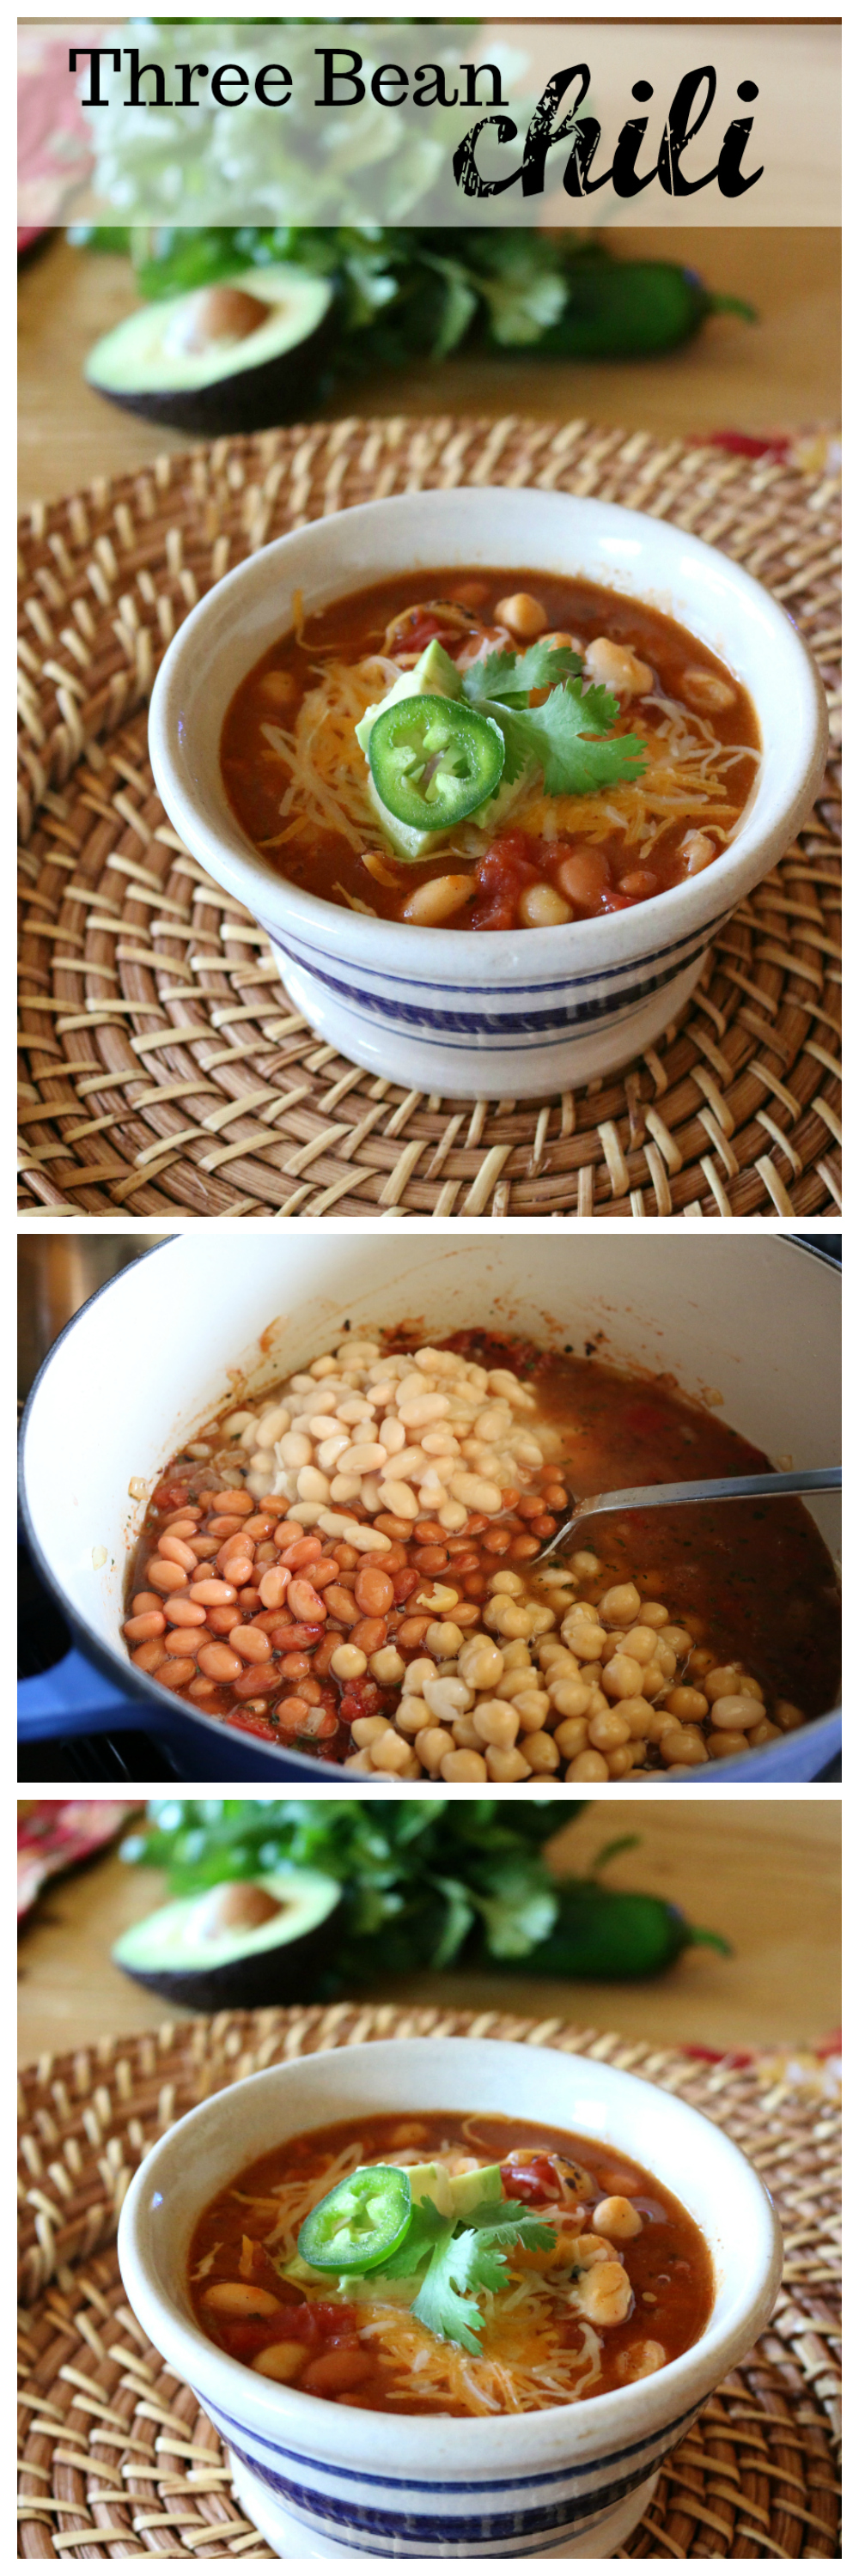 Three Bean Chili Recipe CeceliasGoodStuff.com | Good Food for Good People